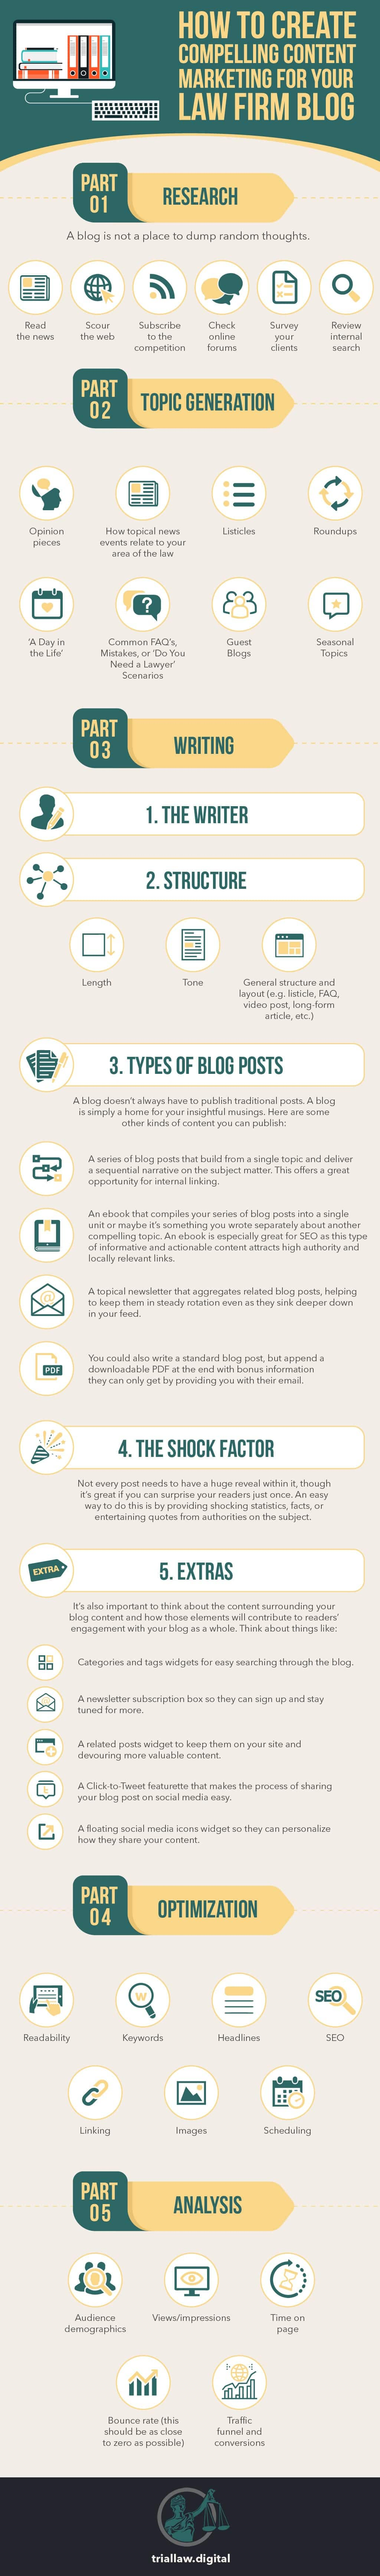 infographic on how to create content for an attorney blog